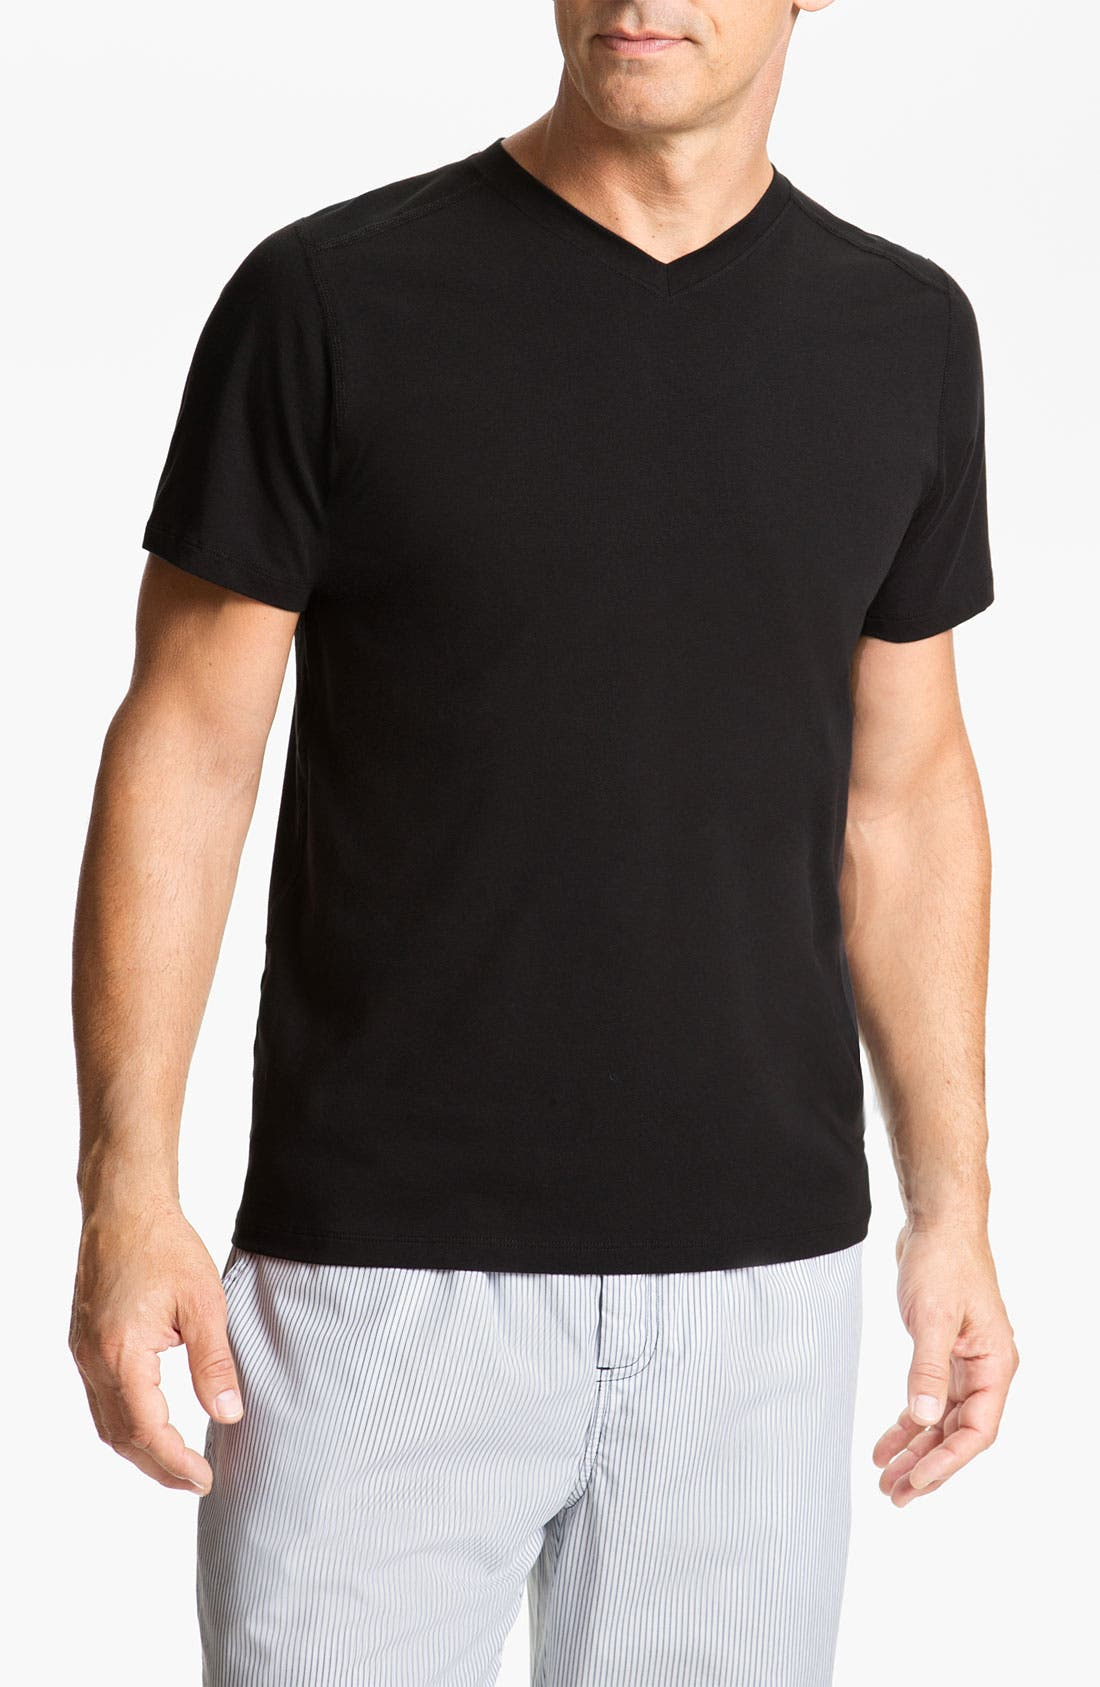 Alternate Image 1 Selected - Daniel Buchler V-Neck T-Shirt